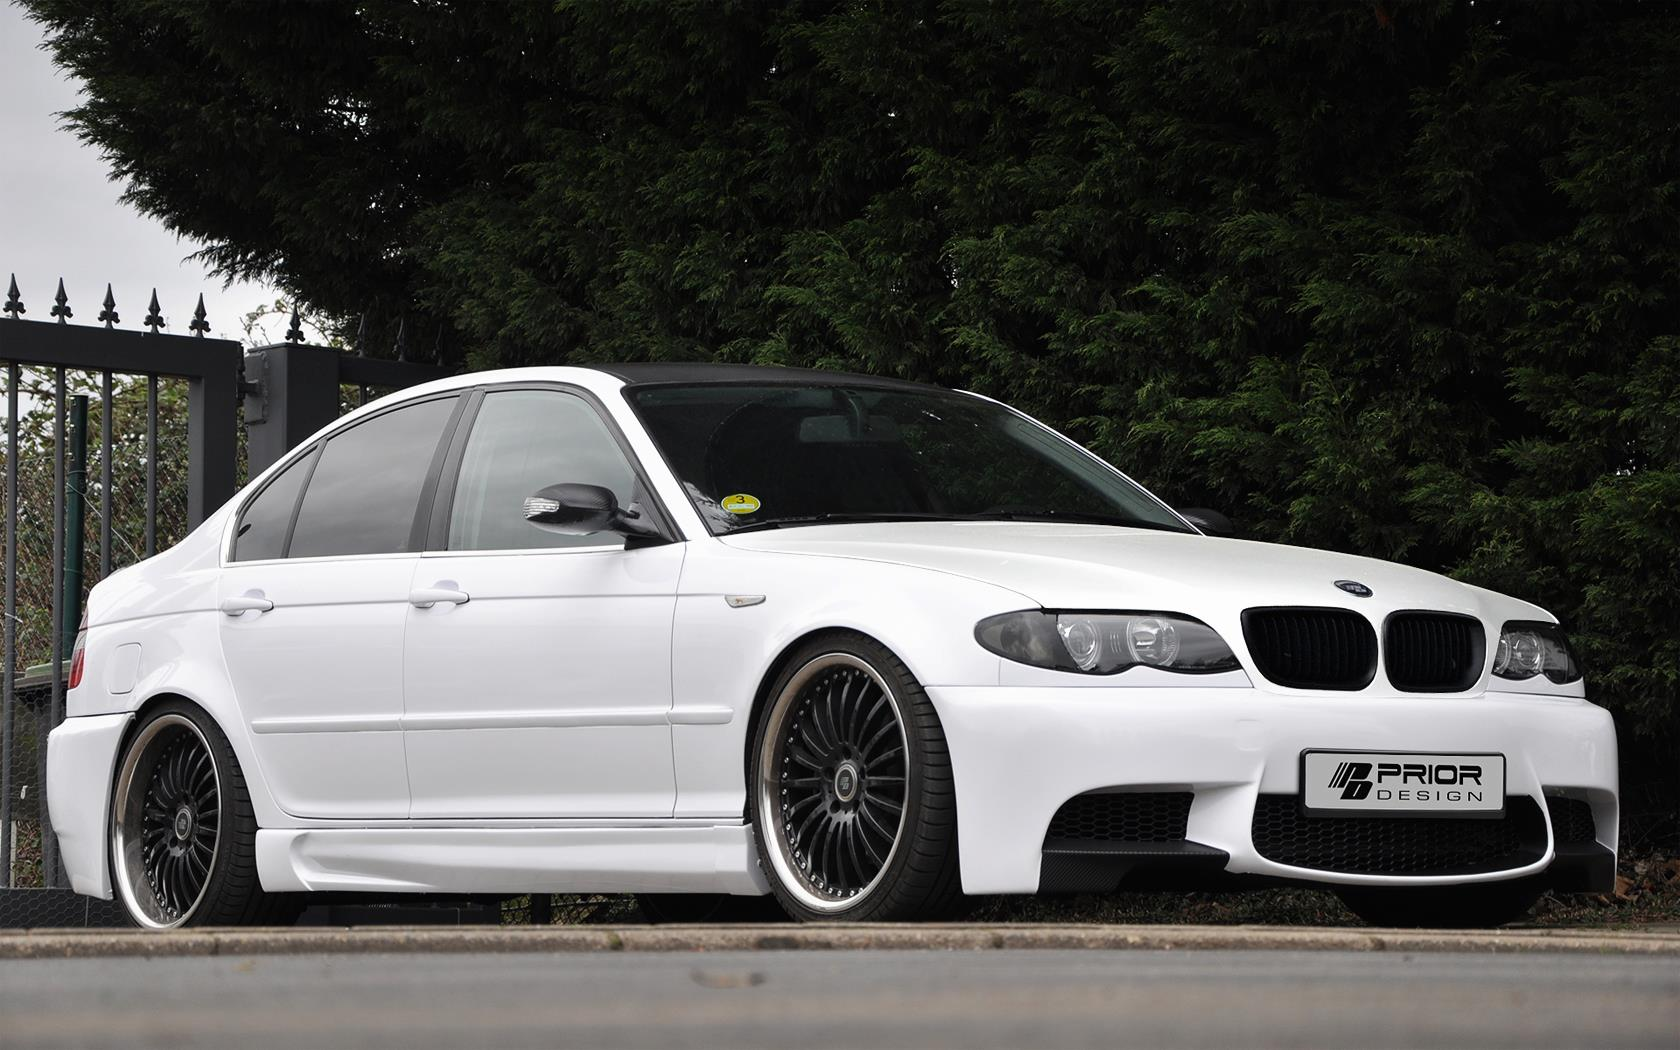 Prior Design BMW 3-Series E46 M3 - More Flexible and Stable